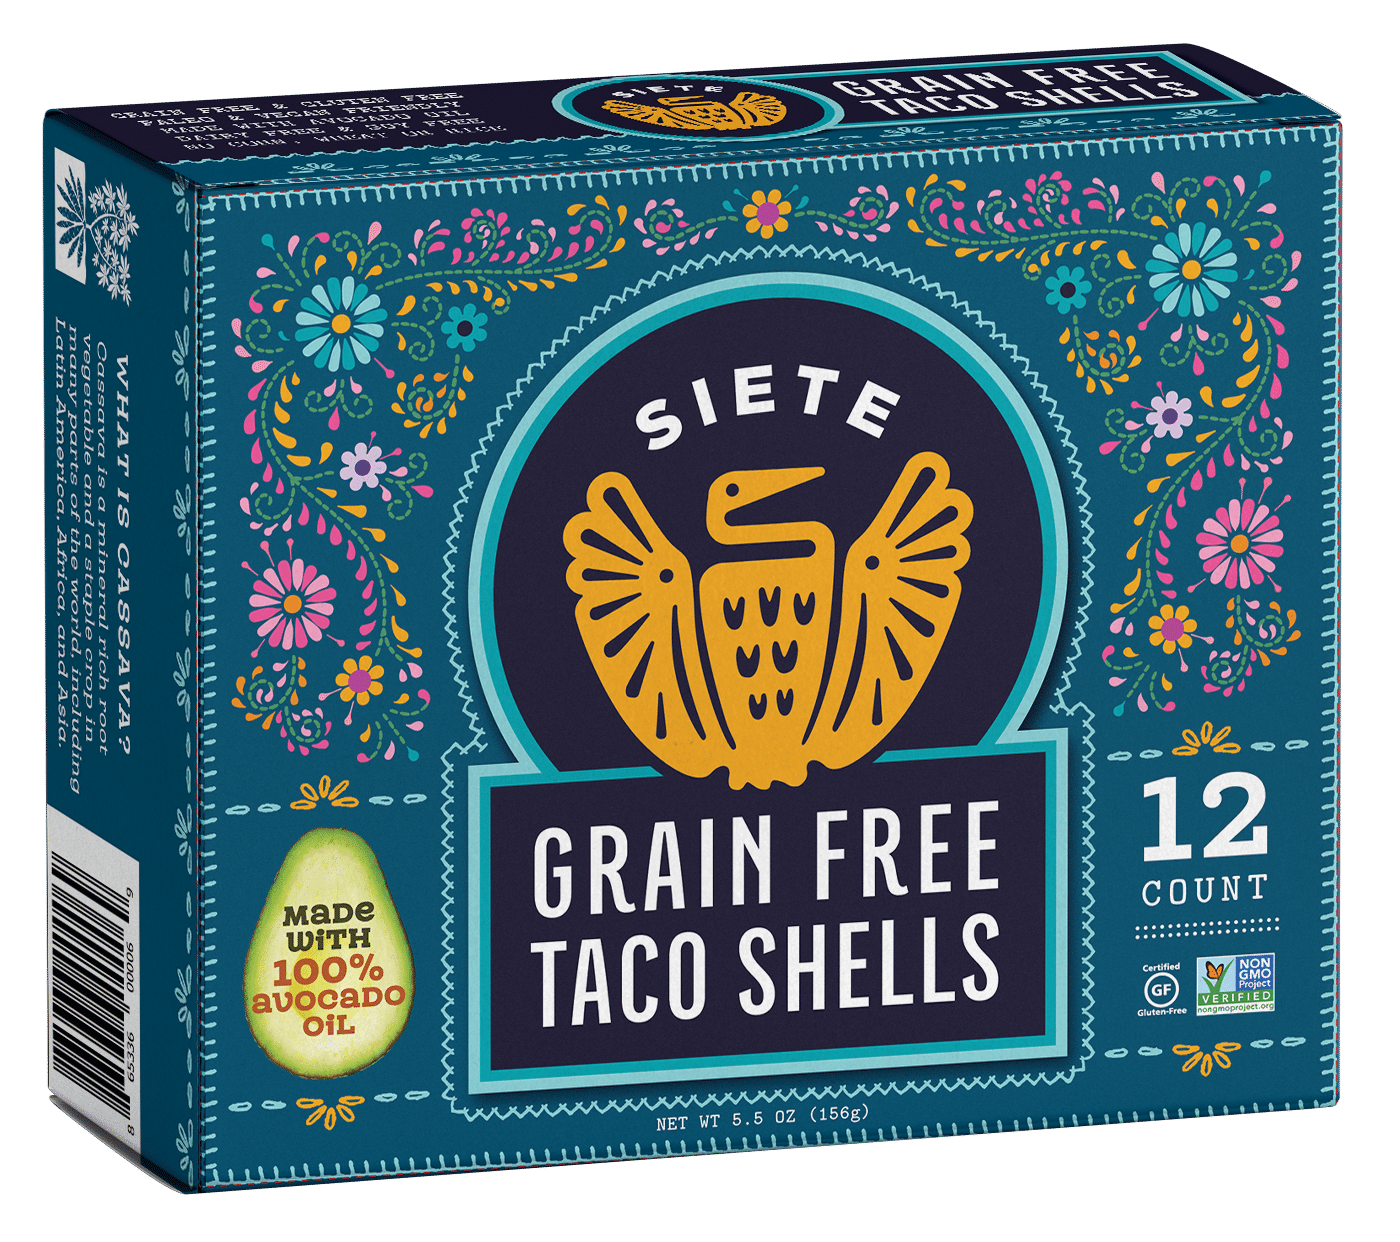 Siete Family Foods Launches Grain Free Taco Shells